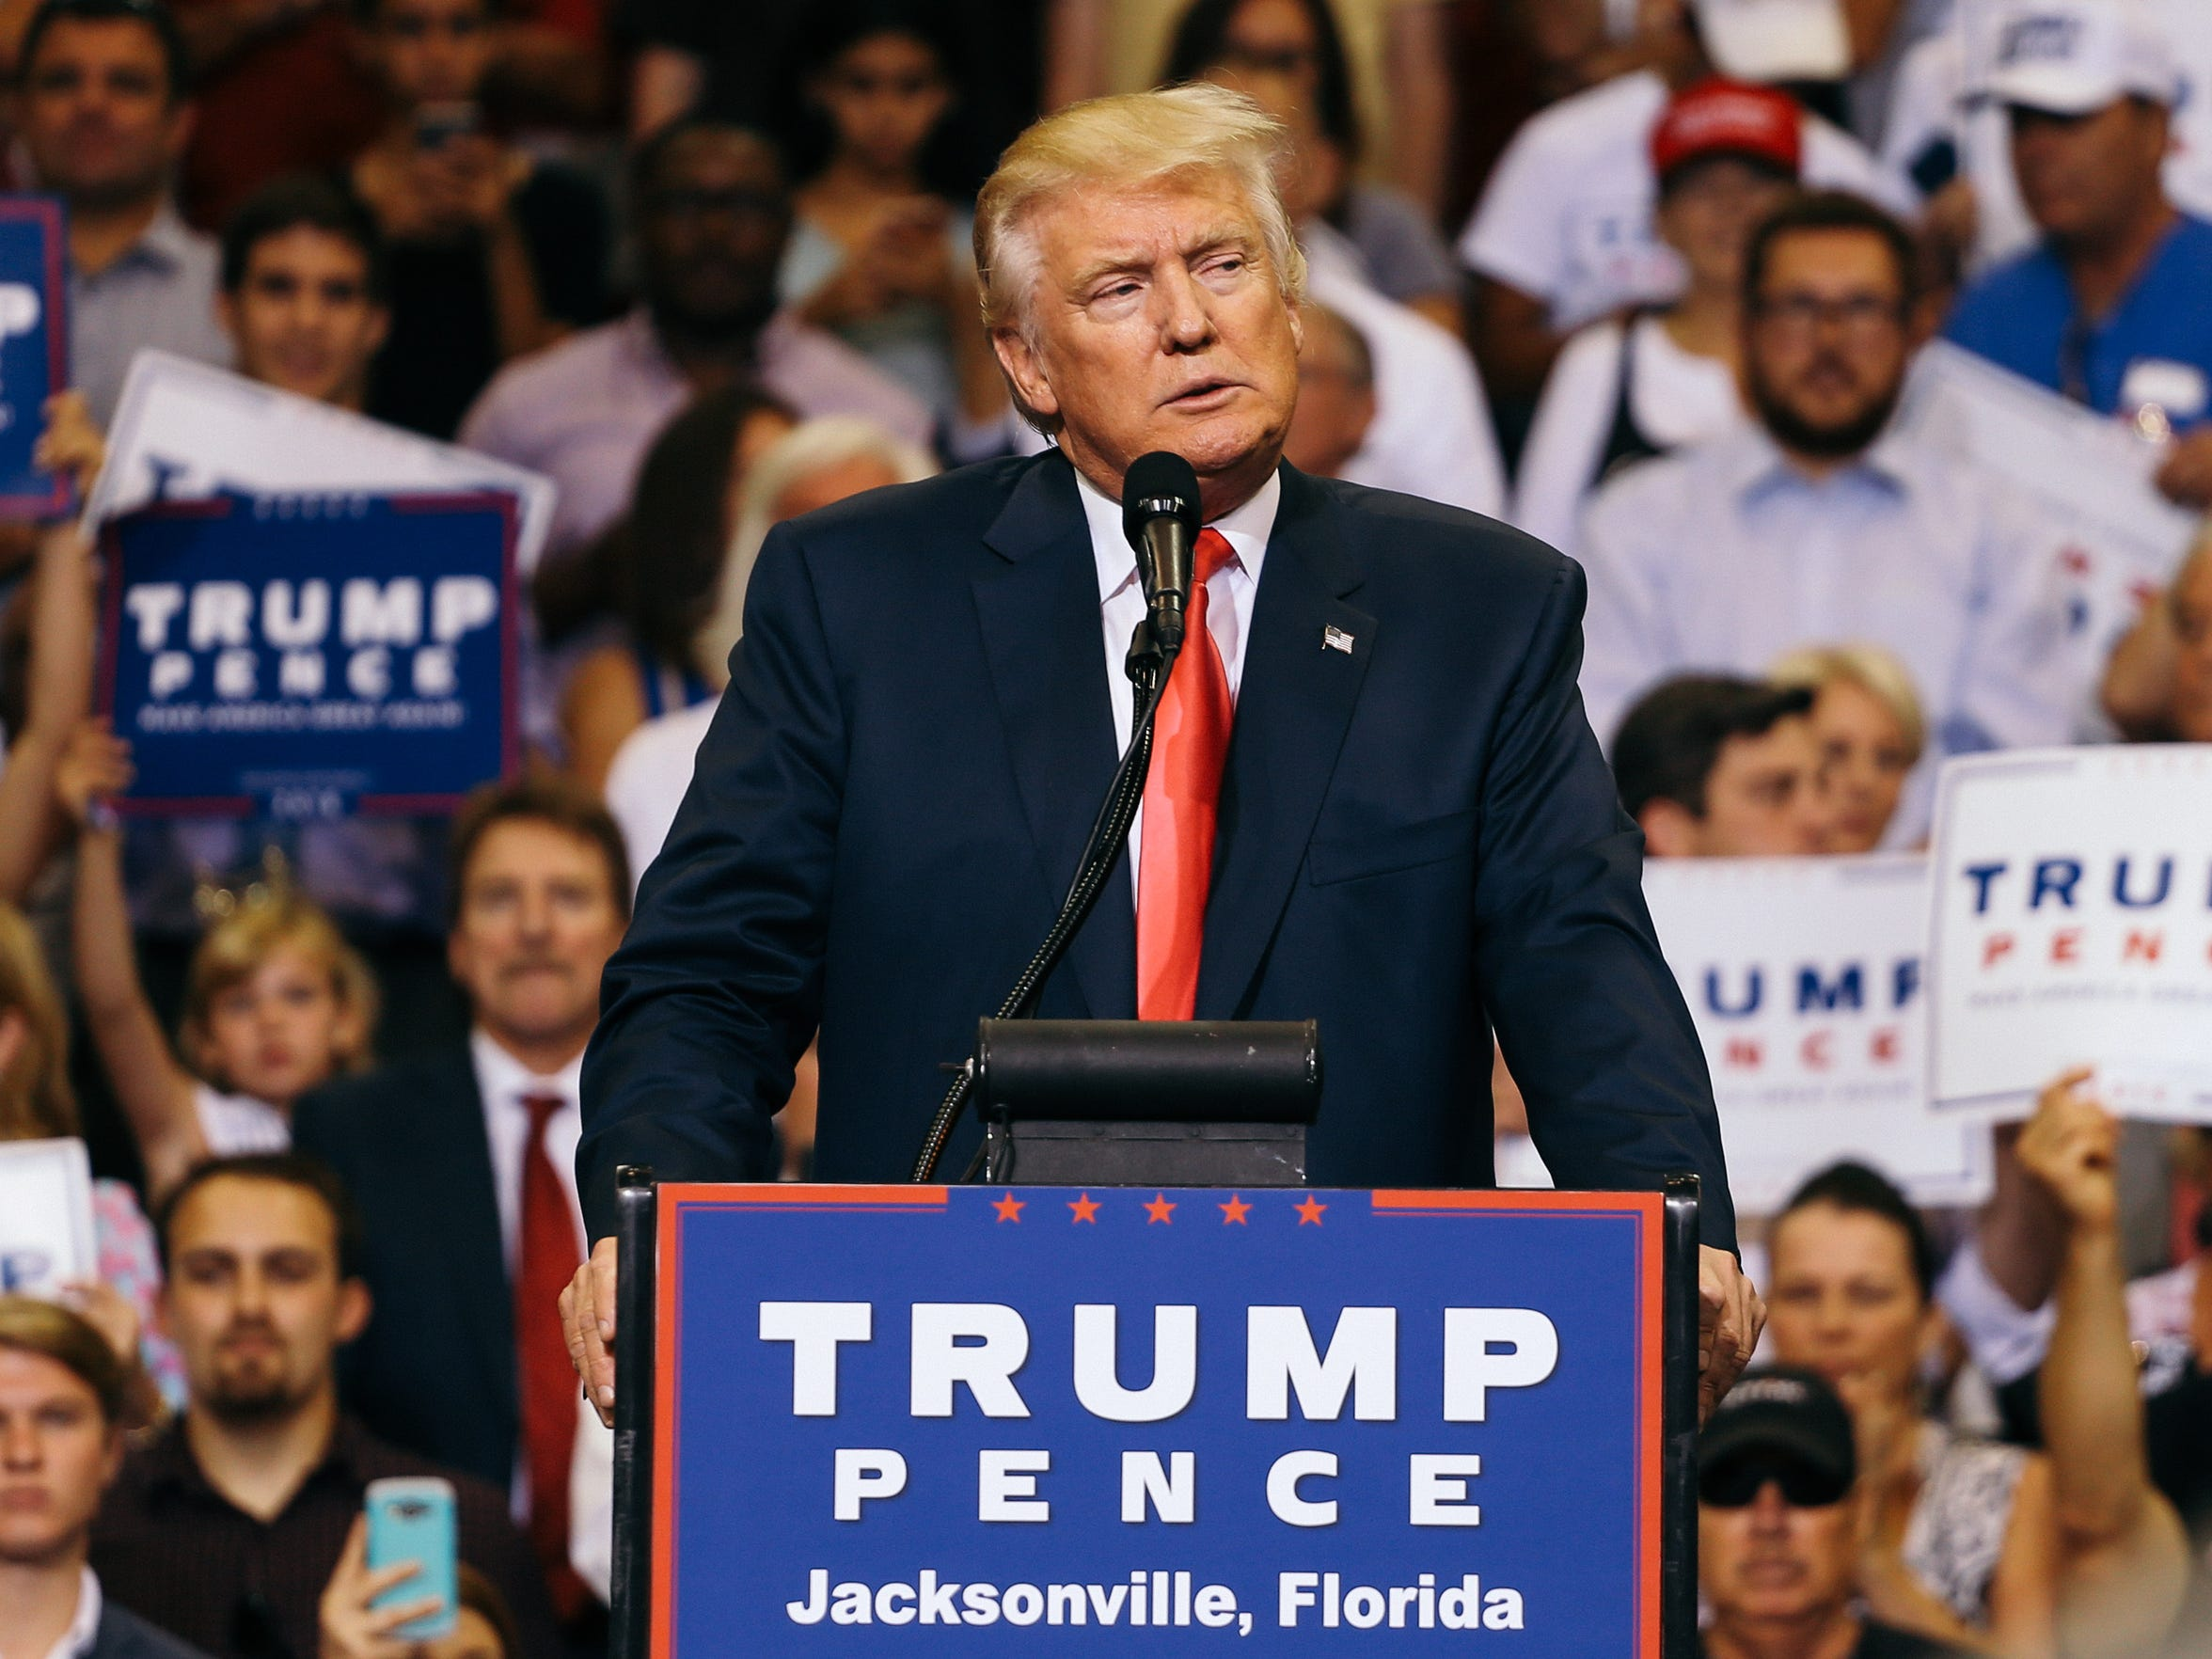 Donald Trump speaks at a rally at the Veterans Memorial Arena in Jacksonville, Florida on Wednesday, August 3, 2016.